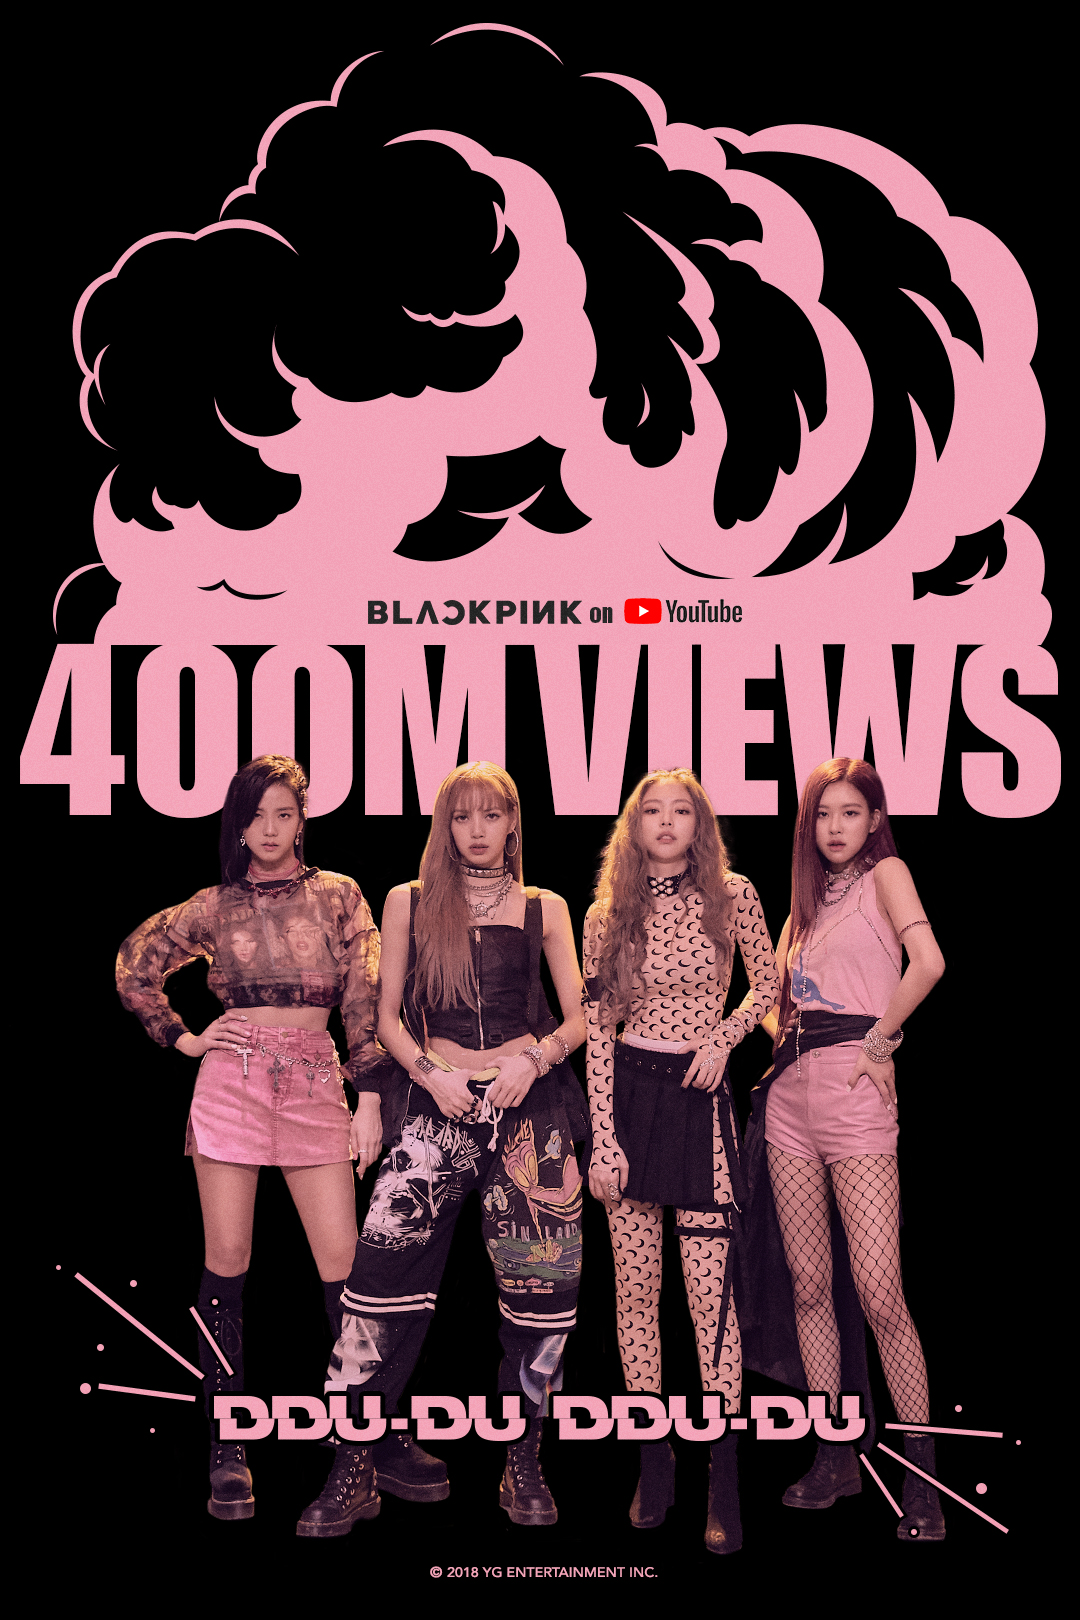 181006 BLACKPINK – 뚜두뚜두 (DDU-DU DDU-DU) MV HITS 400 MILLION VIEWS